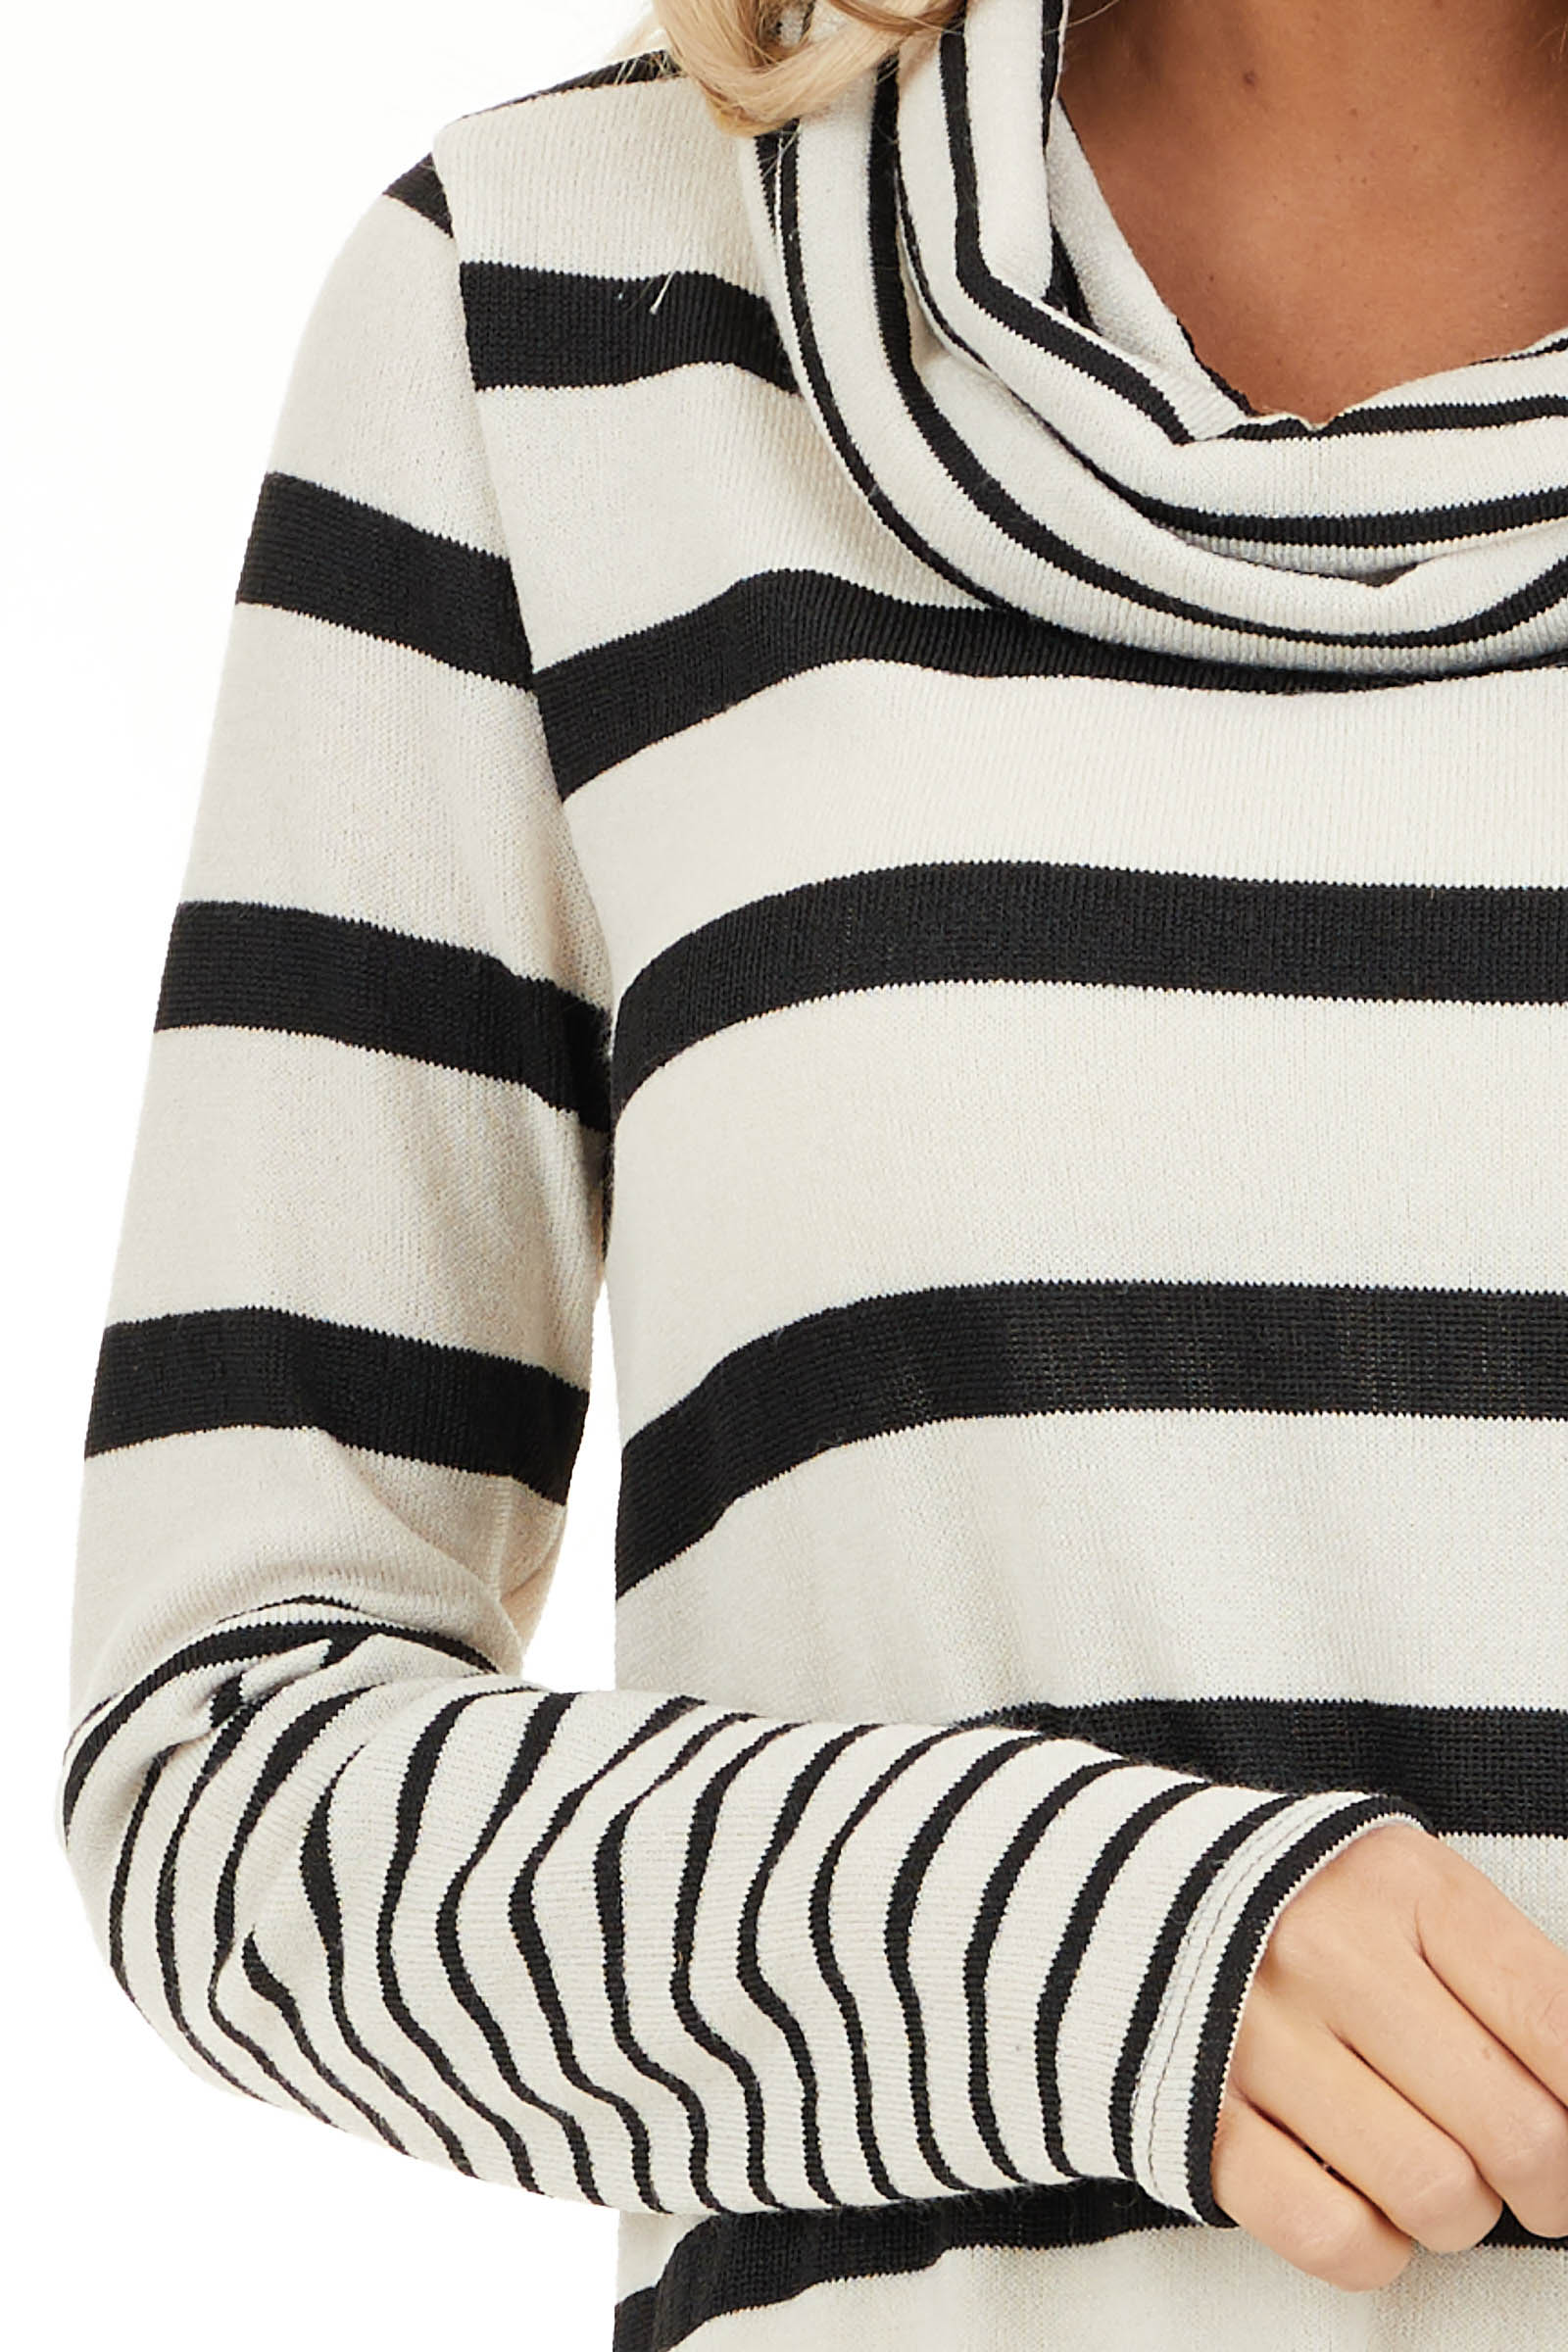 Ivory and Black Striped Long Sleeve Top with Cowl Neckline detail